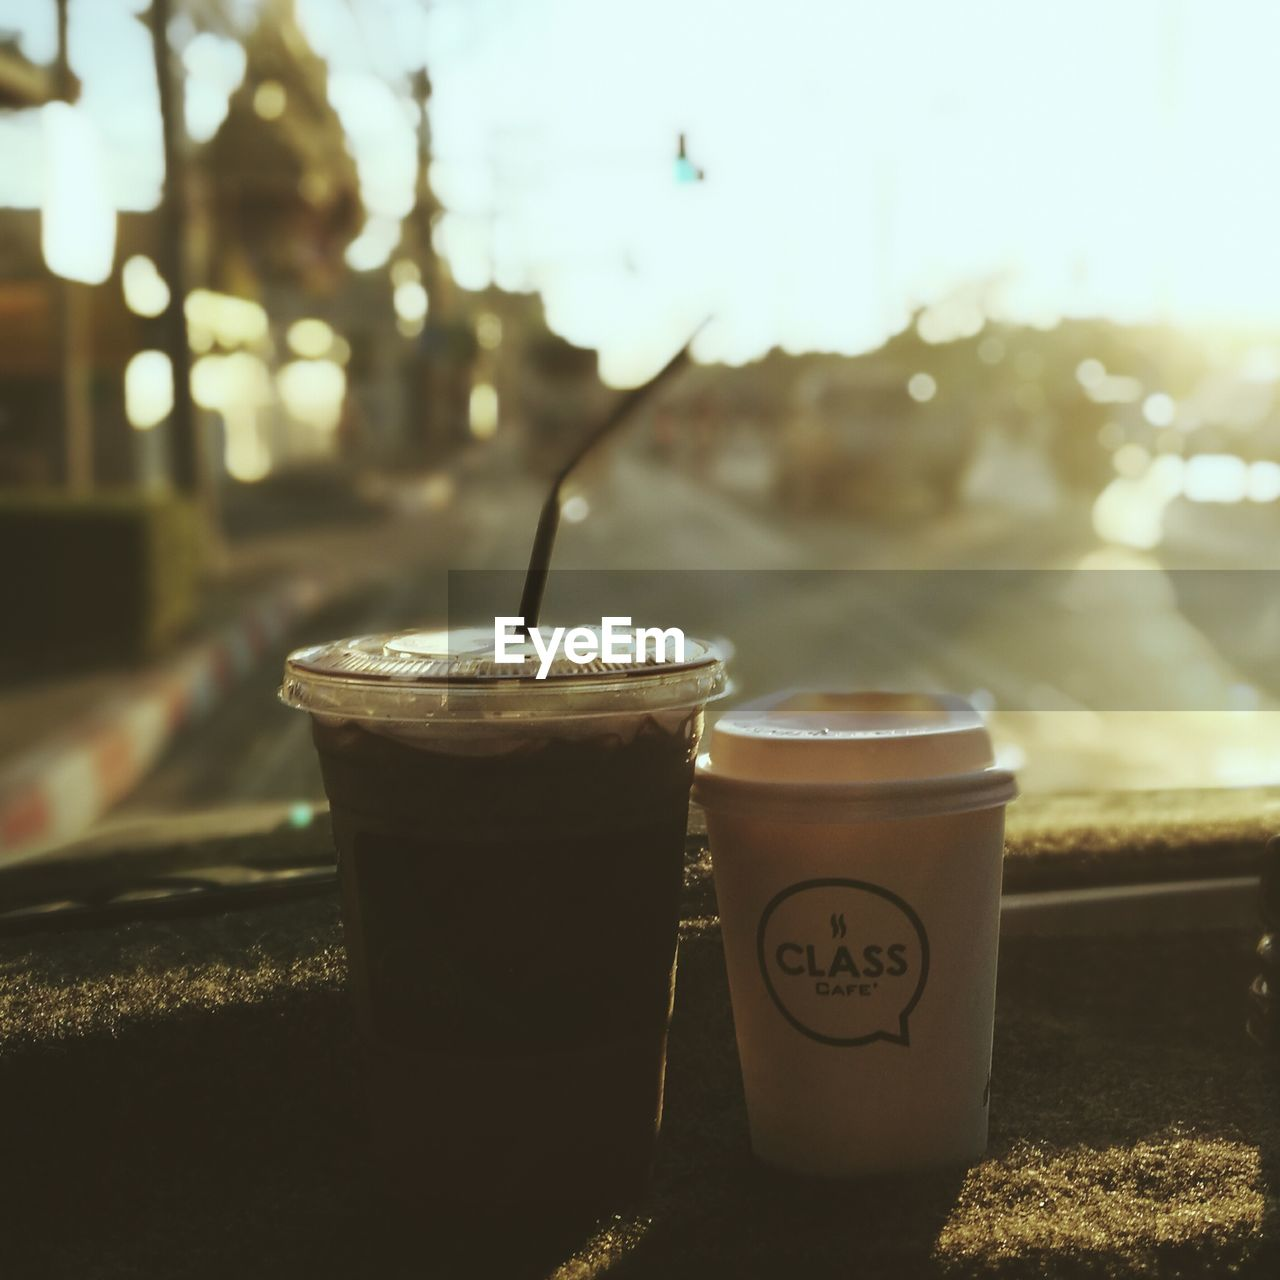 drink, refreshment, coffee - drink, drinking straw, food and drink, coffee cup, focus on foreground, no people, freshness, disposable cup, table, close-up, drinking glass, iced coffee, outdoors, latte, day, frothy drink, nature, sky